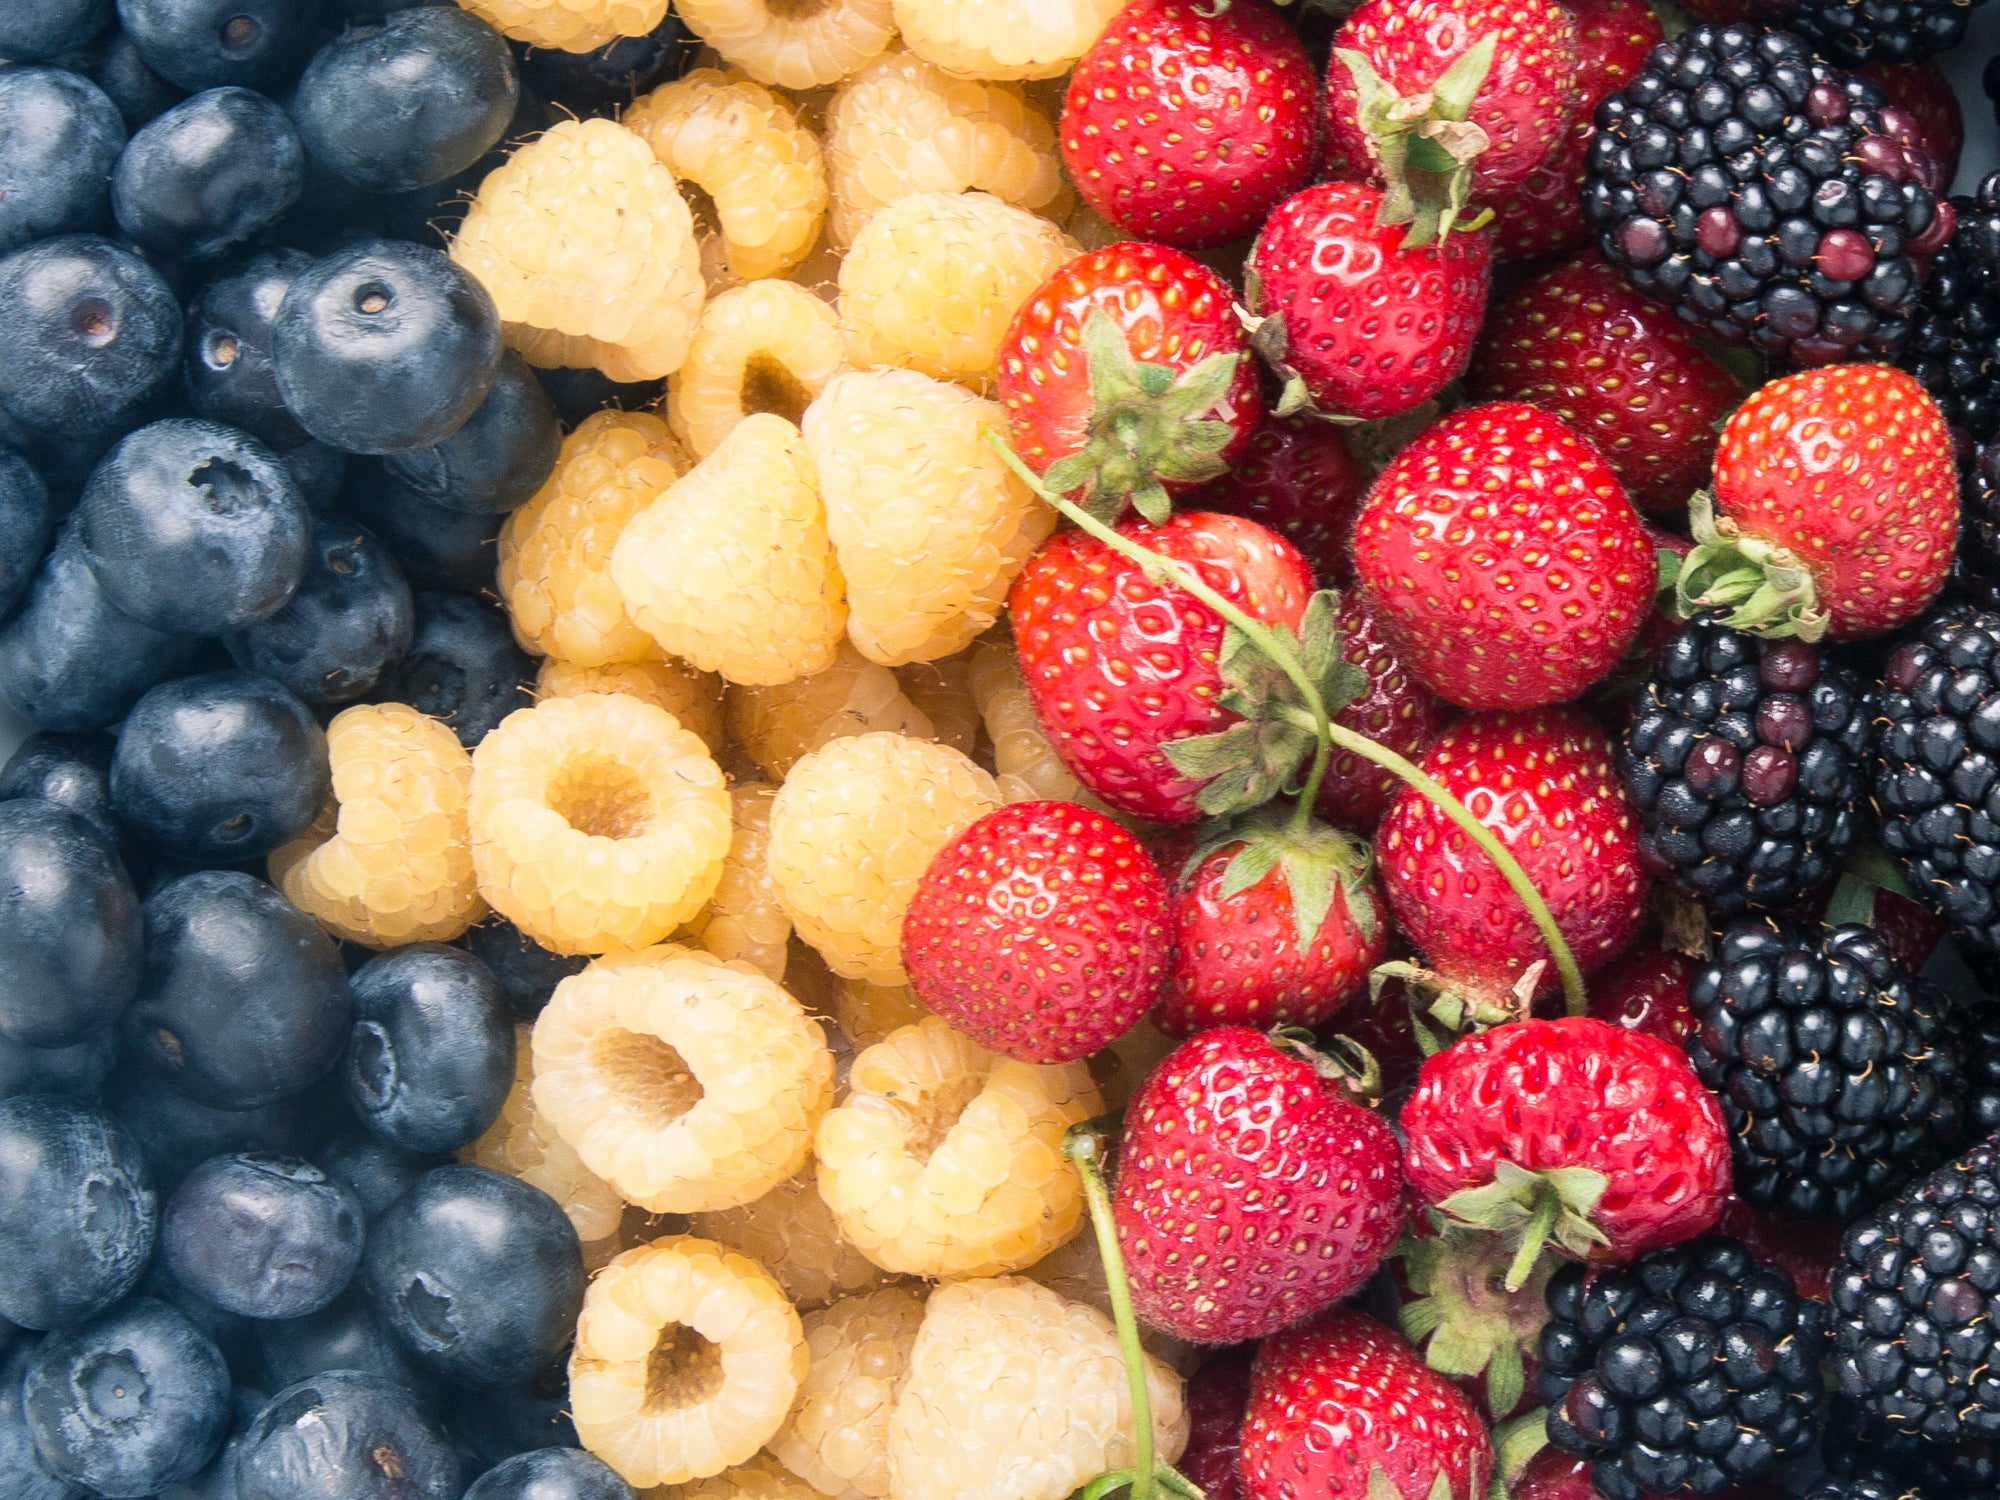 Video: How to Macerate Berries